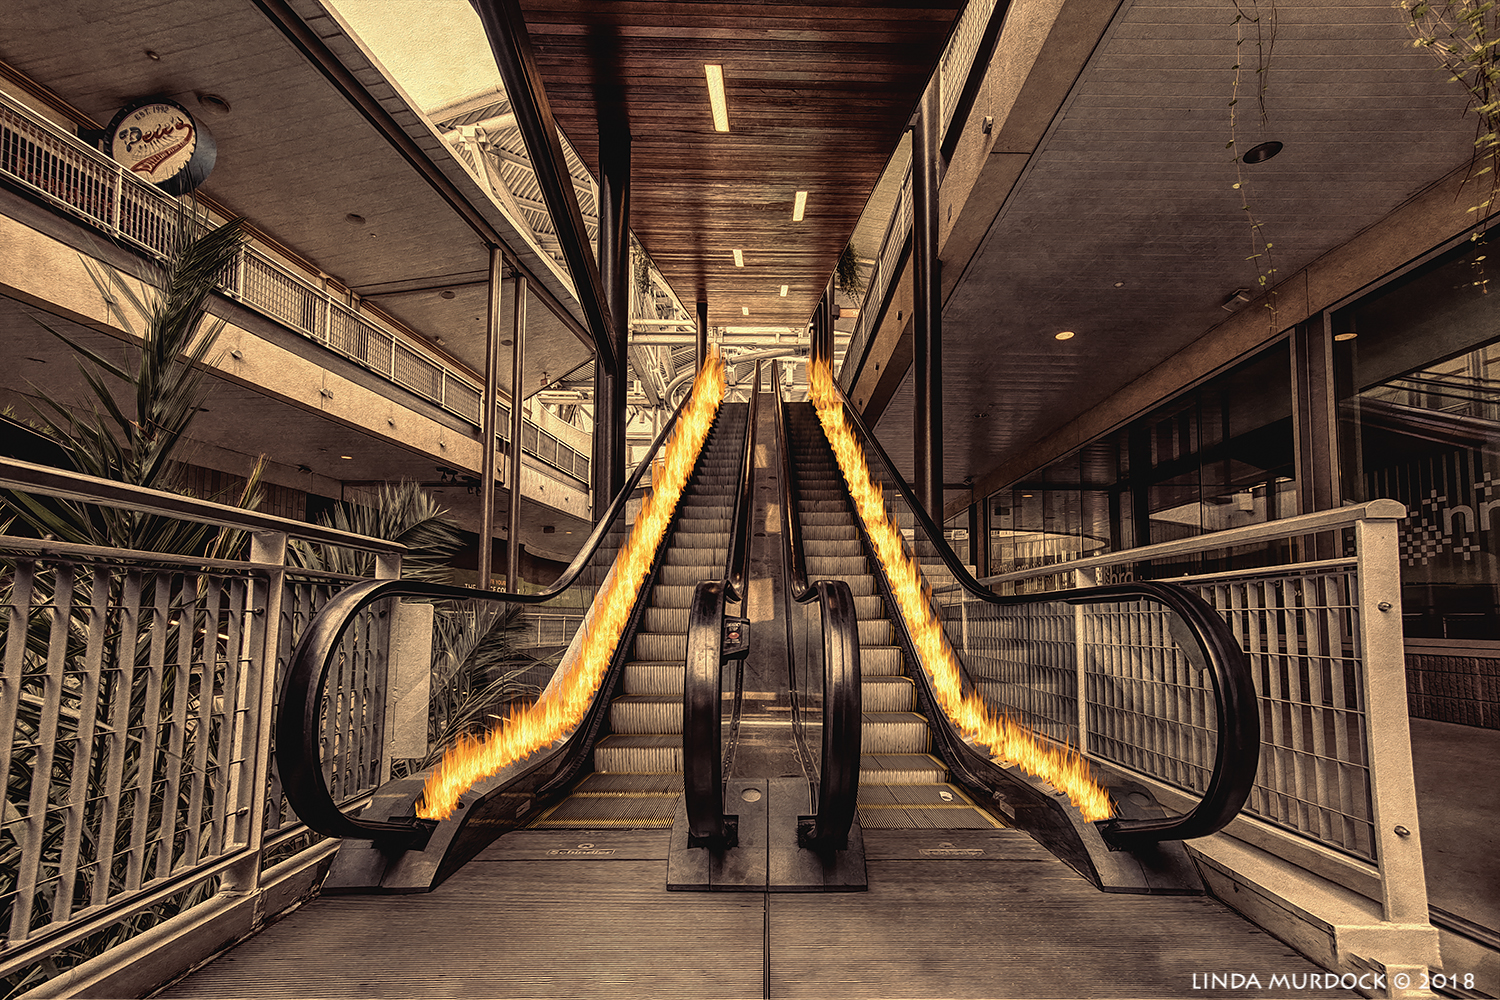 Stairway to ....